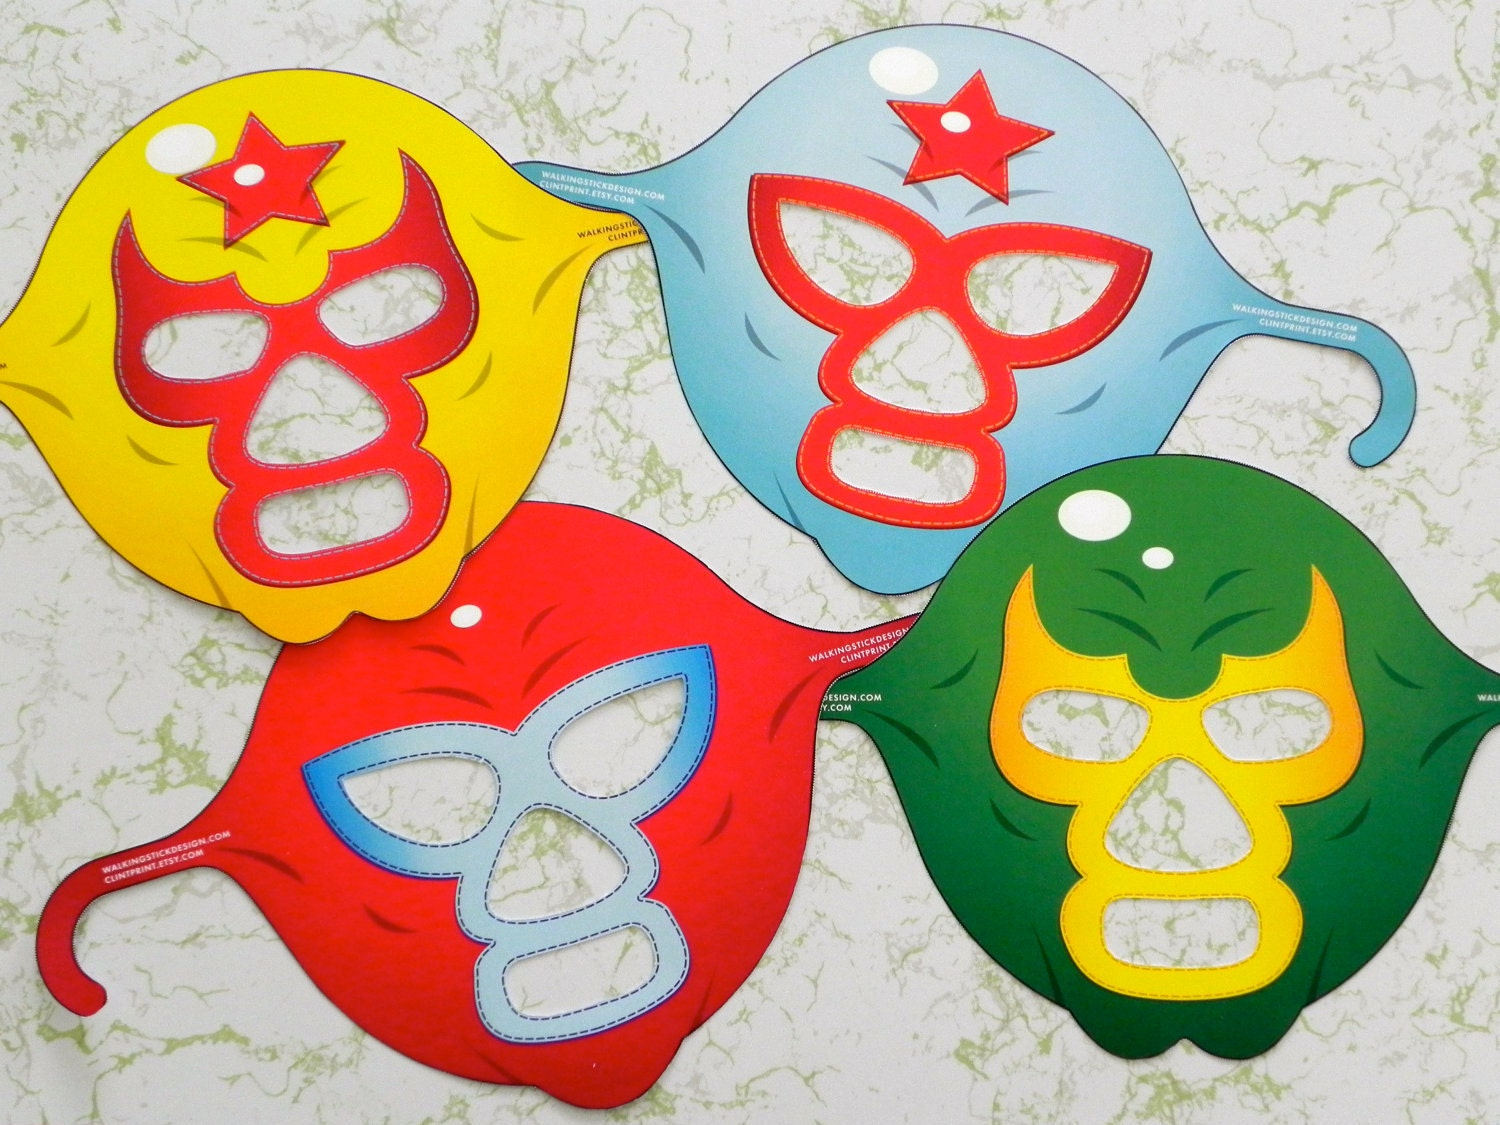 Request a custom order and have something made just for you.: www.etsy.com/listing/91117321/luchador-masks-party-set